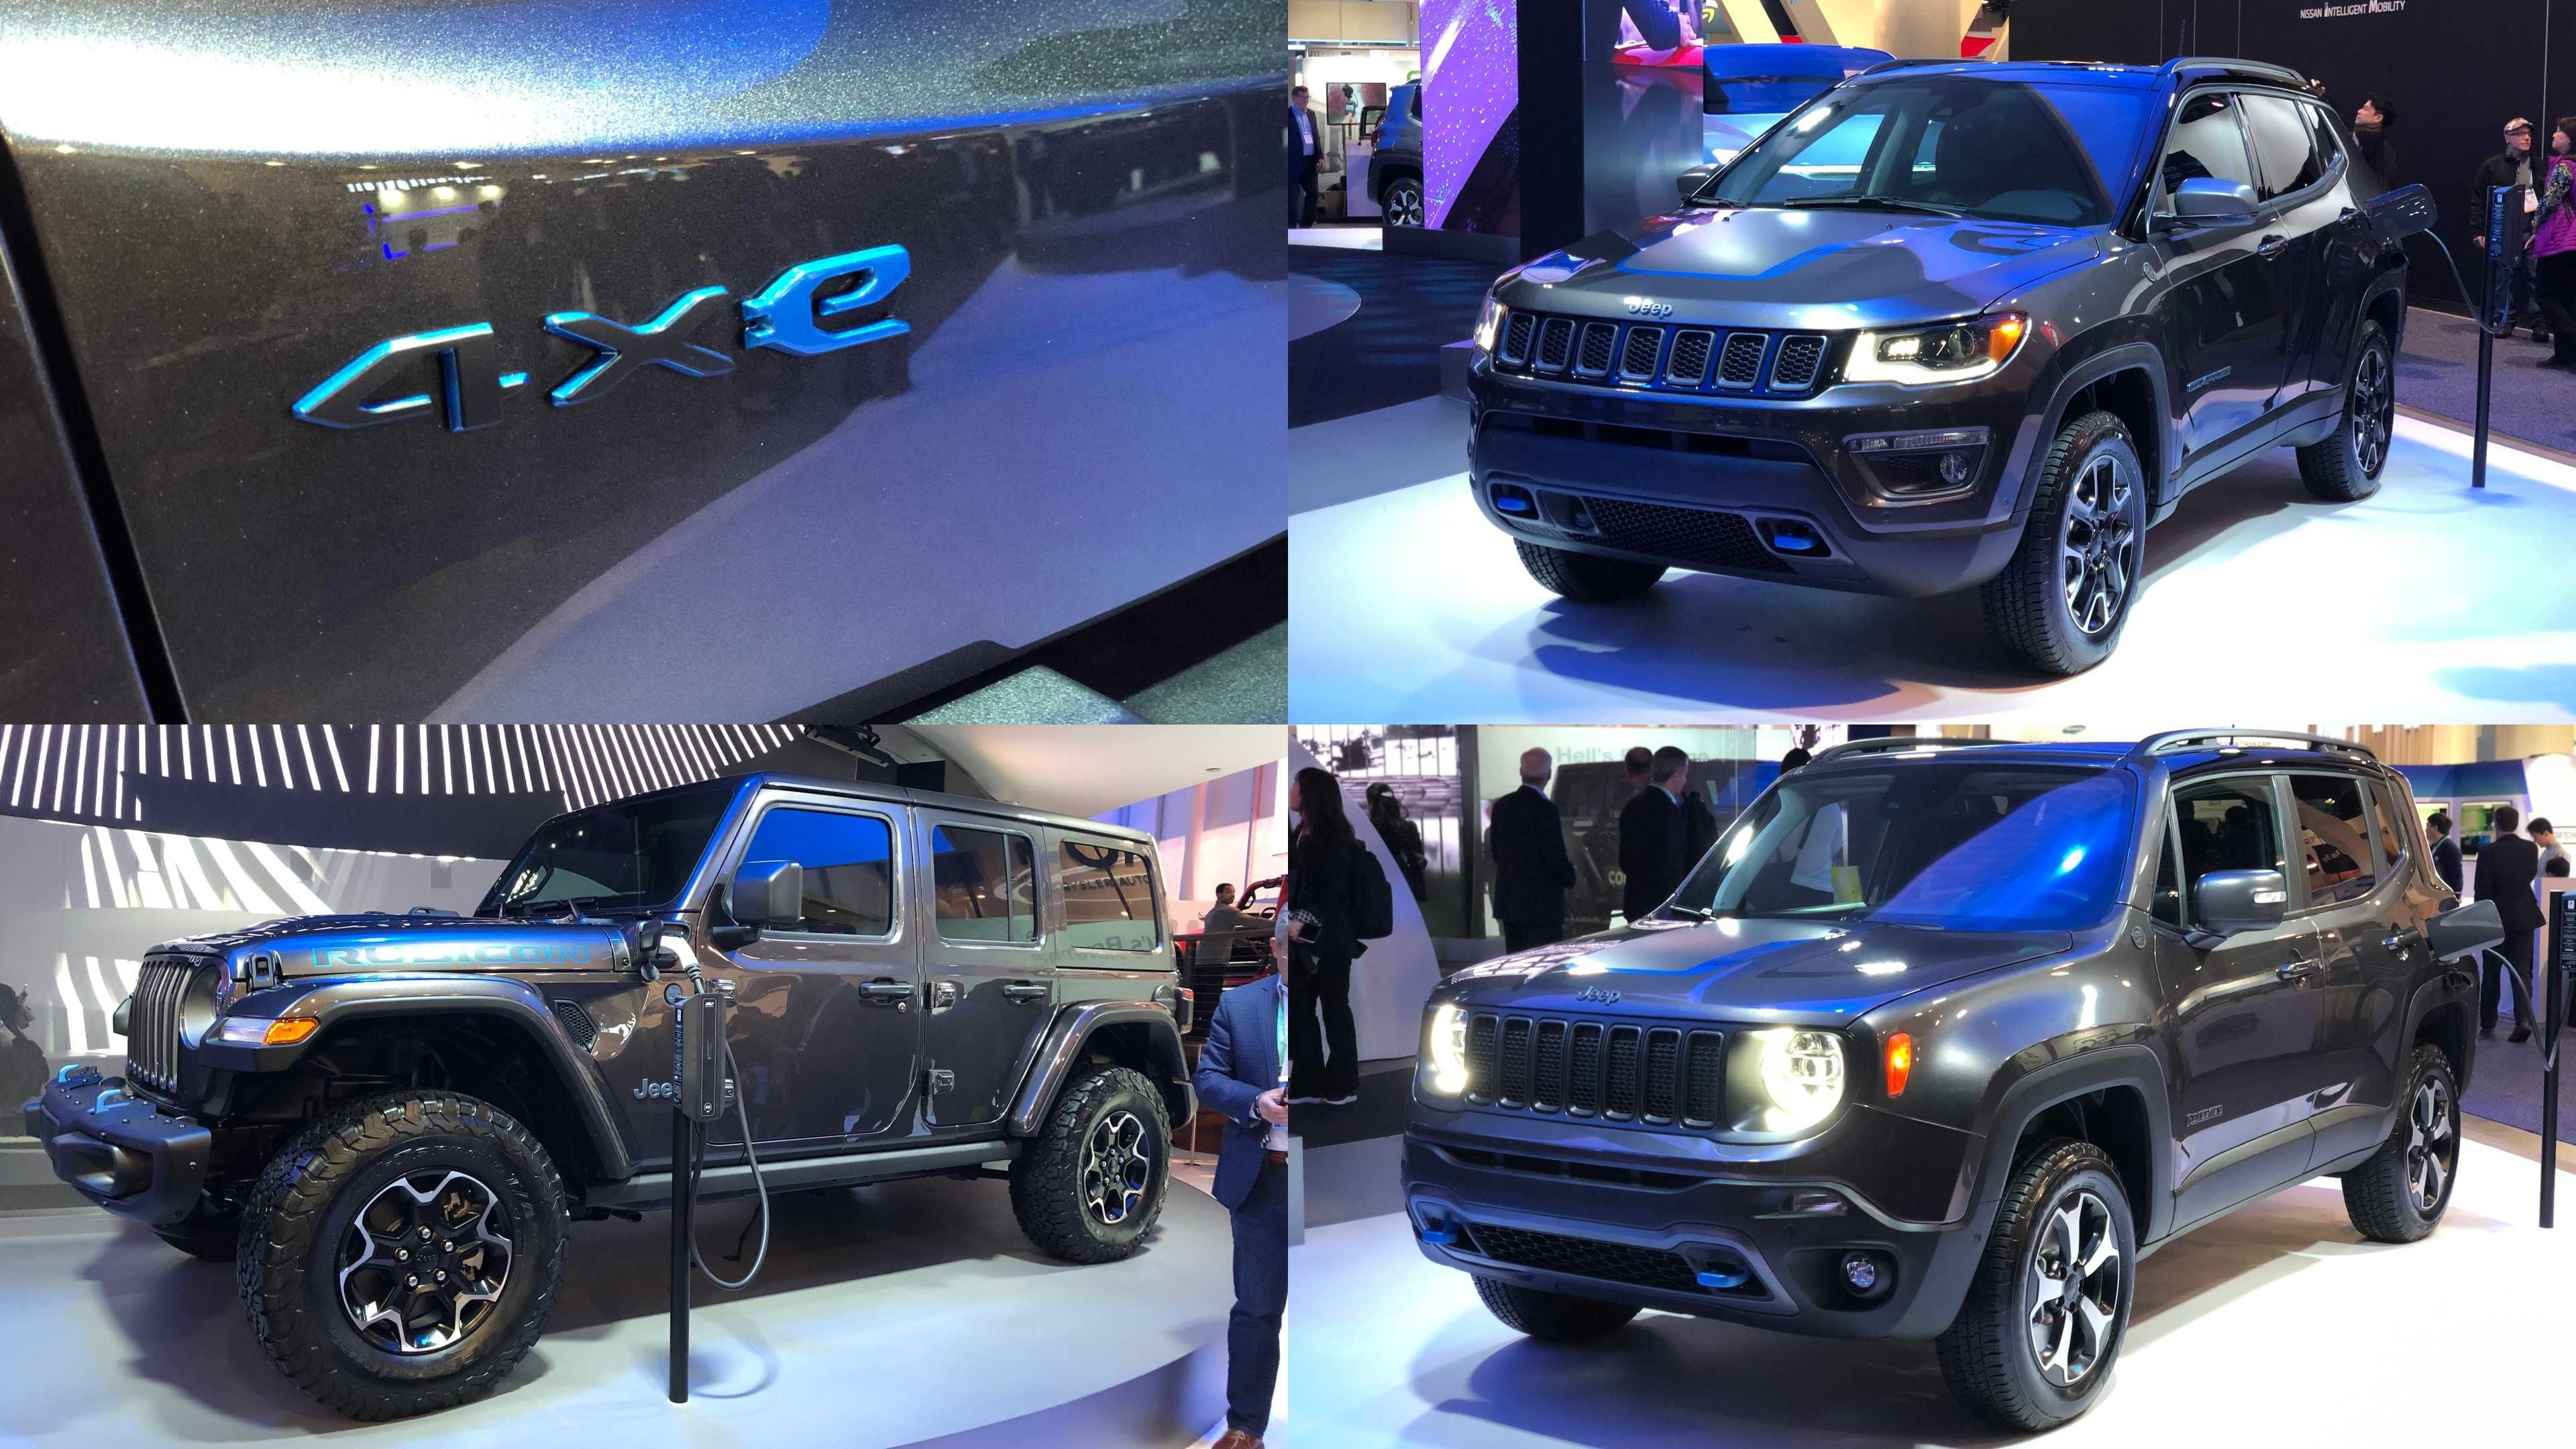 Check Out Jeep Wrangler 4xe Phev Plugged In And Charging At Ces In